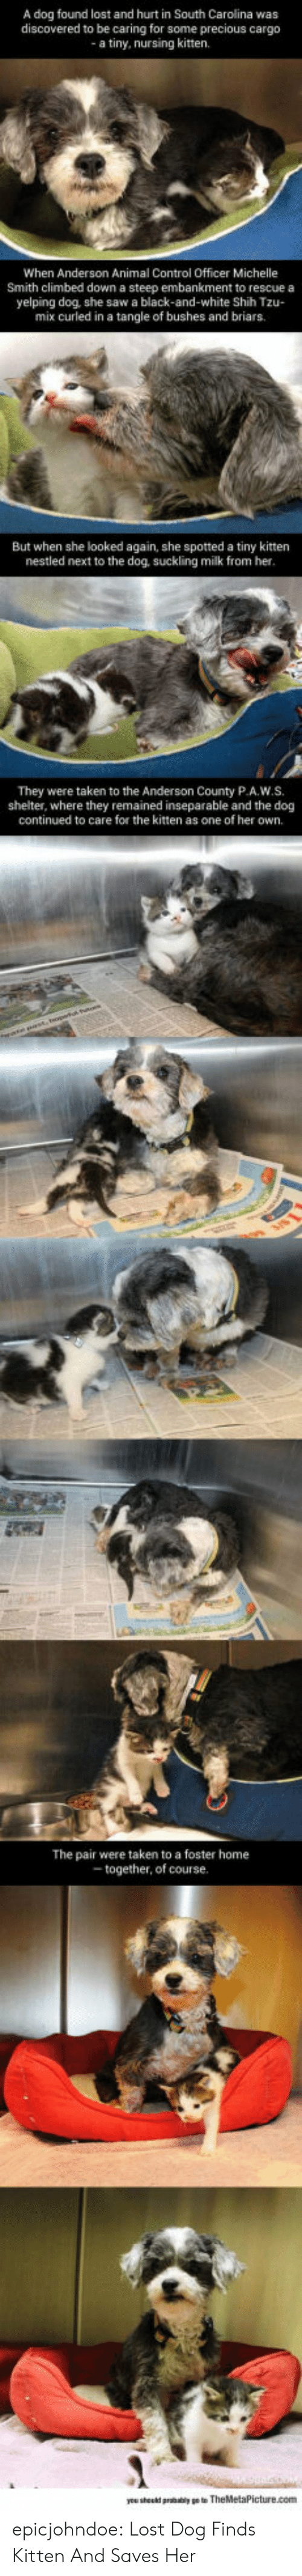 michelle: A dog found lost and hurt in South Carolina was  discovered to be caring for some precious cargo  a tiny, nursing kitten.  When Anderson Animal Control Officer Michelle  Smith climbed down a steep embankment to rescue a  yelping dog, she saw a black-and-white Shih Tzu-  mix curled in a tangle of bushes and briars.  But when she looked again, she spotted a tiny kitten  nestled next to the dog, suckling milk from her  They were taken to the Anderson County P.A.W.S.  shelter, where they remained inseparable and the dog  continued to care for the kitten as one of her own.  The pair were taken to a foster home  together, of course epicjohndoe:  Lost Dog Finds Kitten And Saves Her